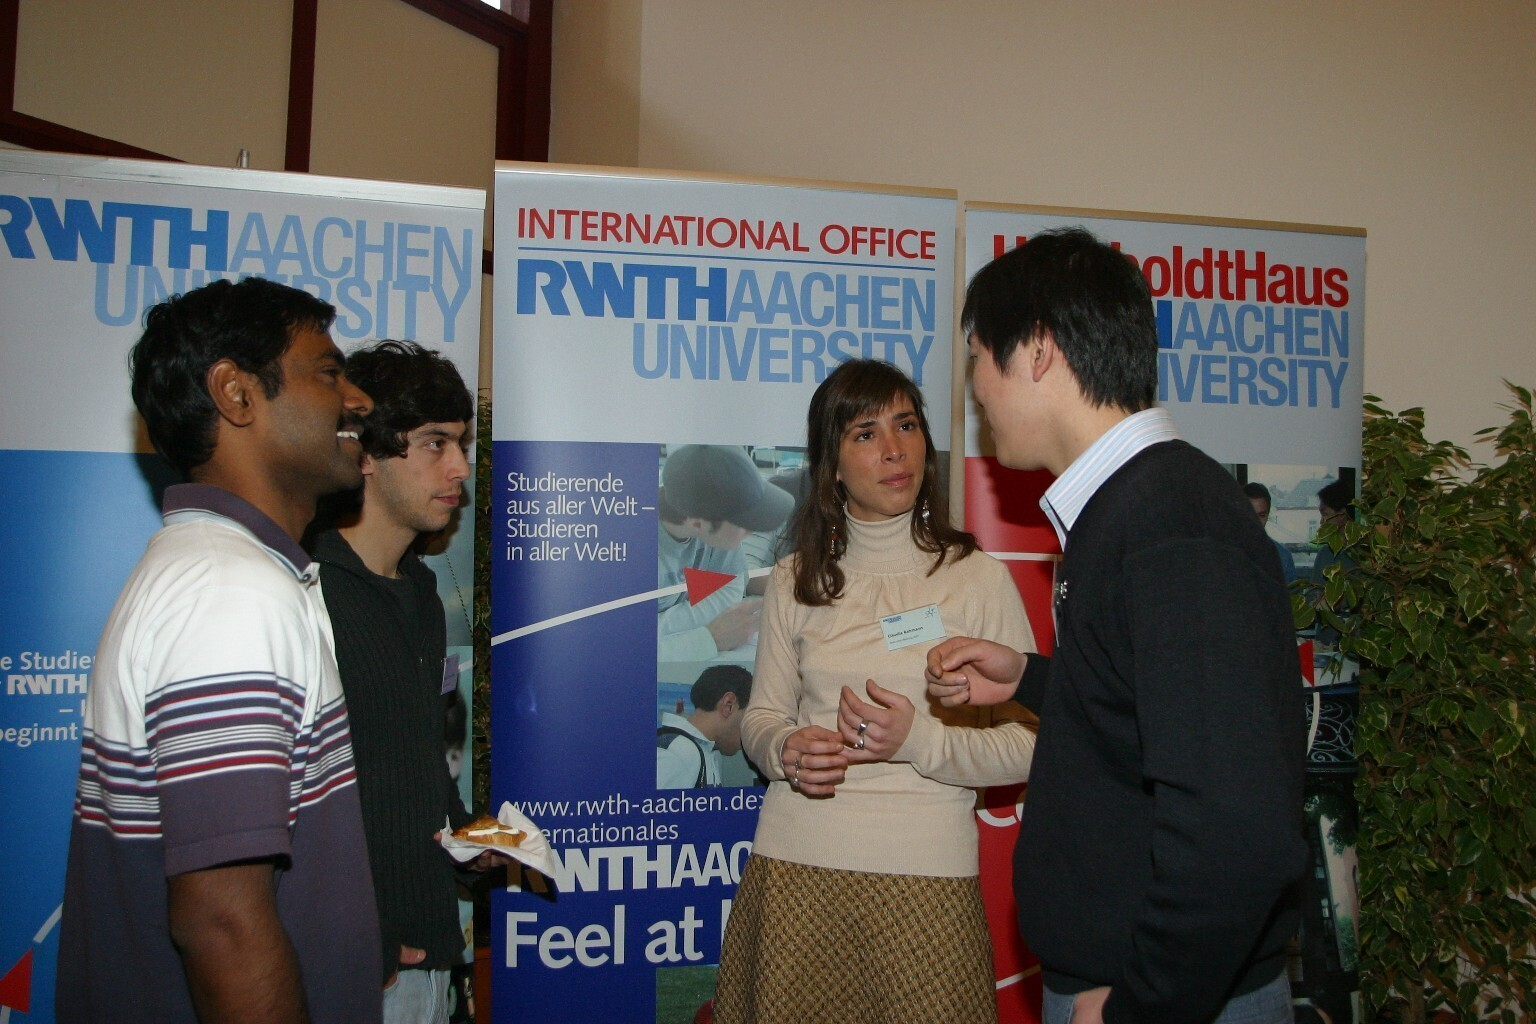 International researchers in conversation